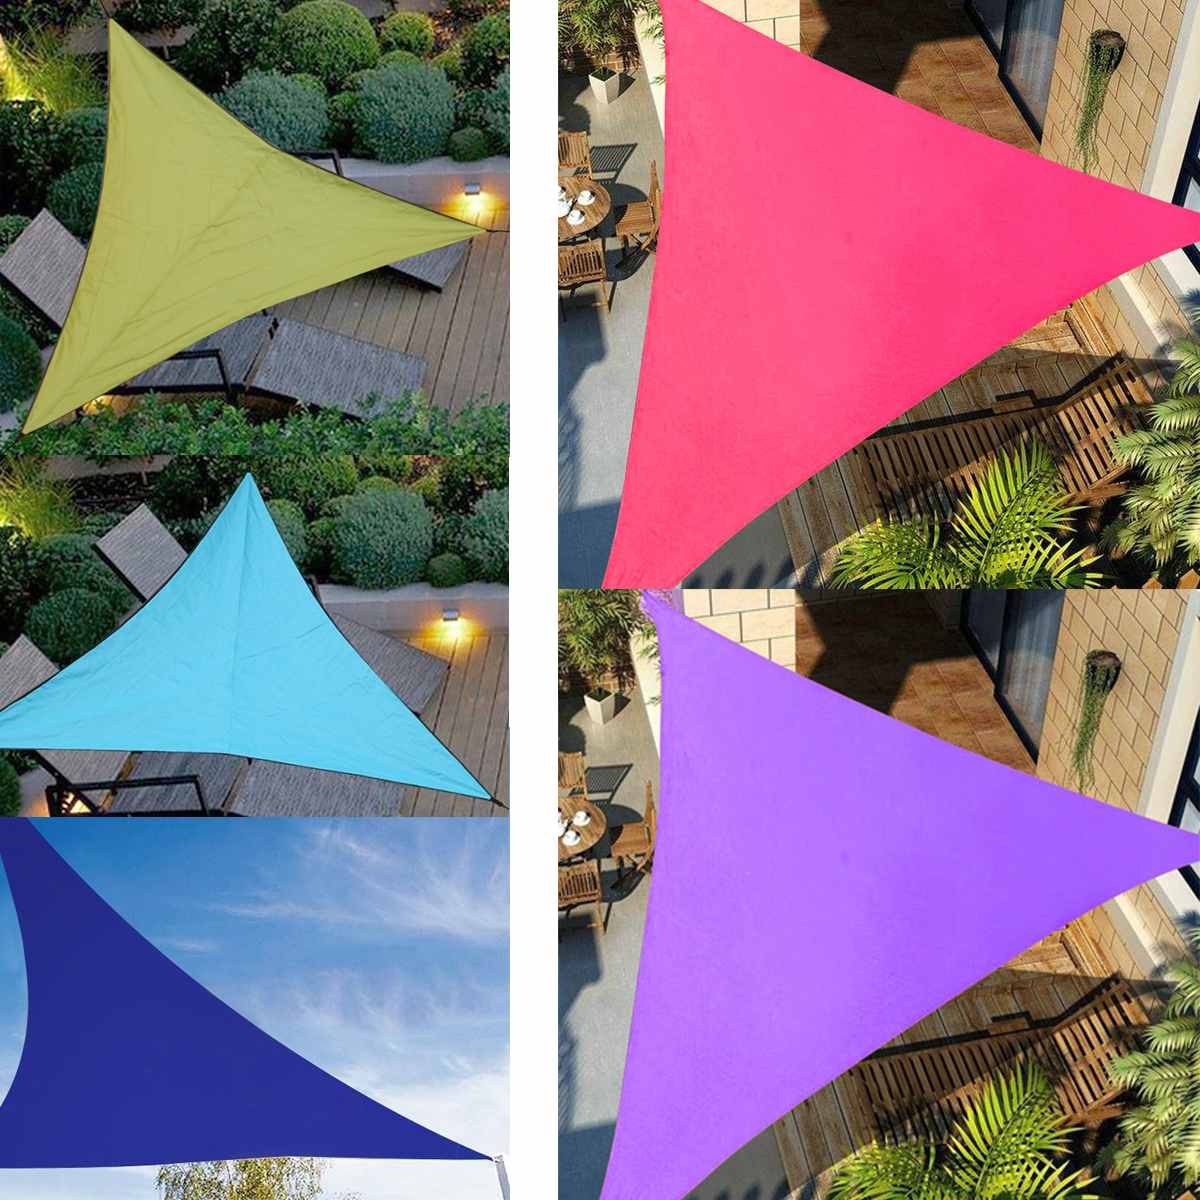 3x3m 4x4m 6x6m Waterproof Triangle Awning Shade Sail Sun Outdoor Sun Shelter Shade Sail Garden Patio Pool Camping Picnic Tent